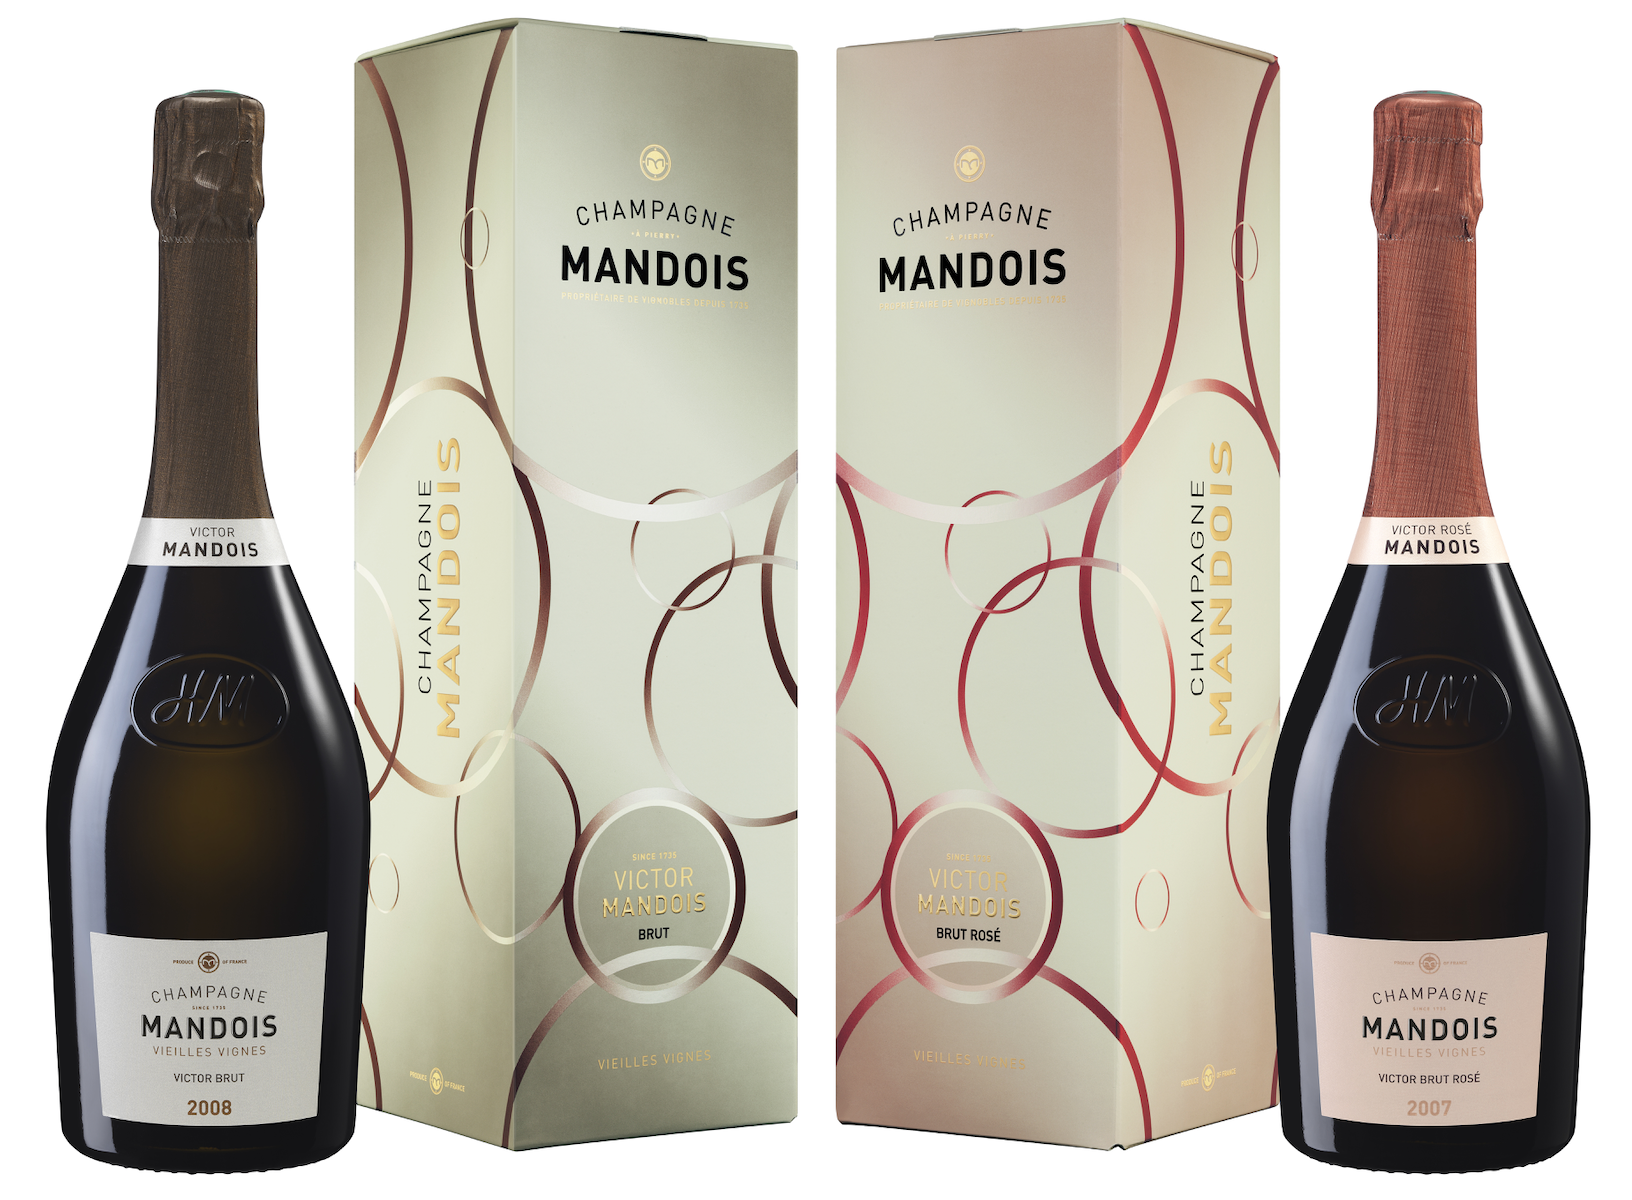 VICTOR MANDOIS NEW GIFT BOXES